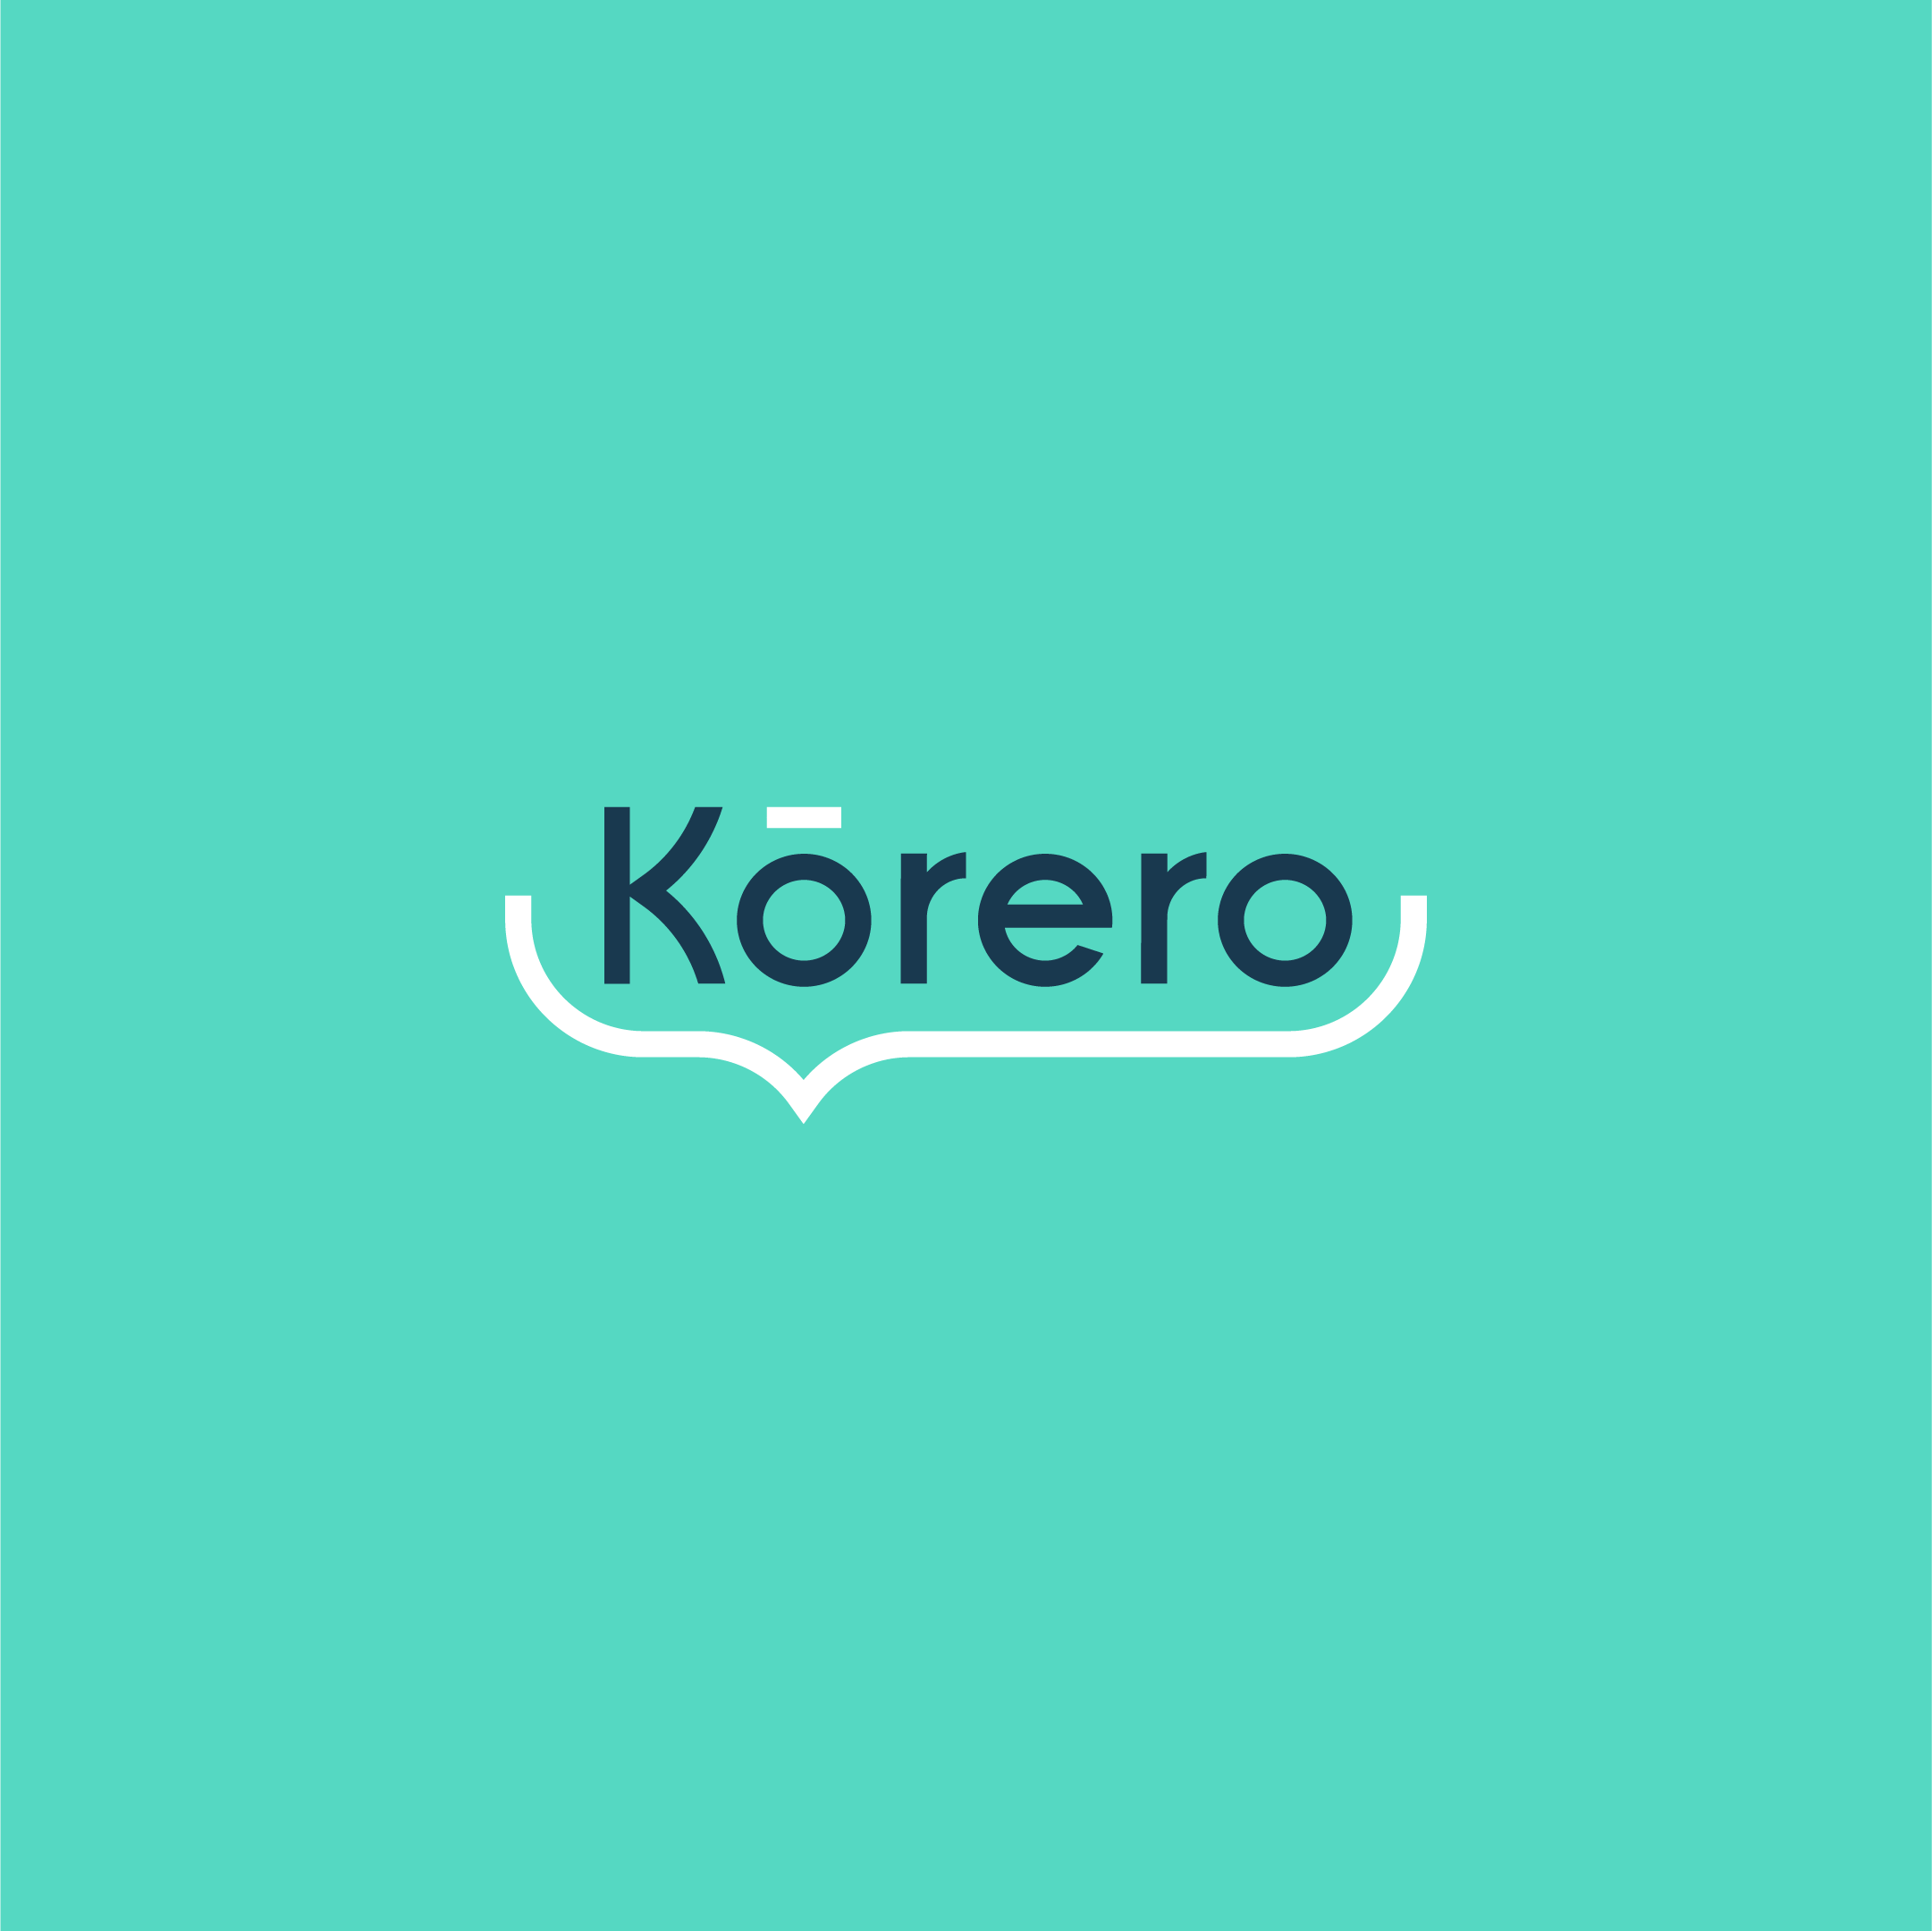 Korero logo by Ben Clark Design